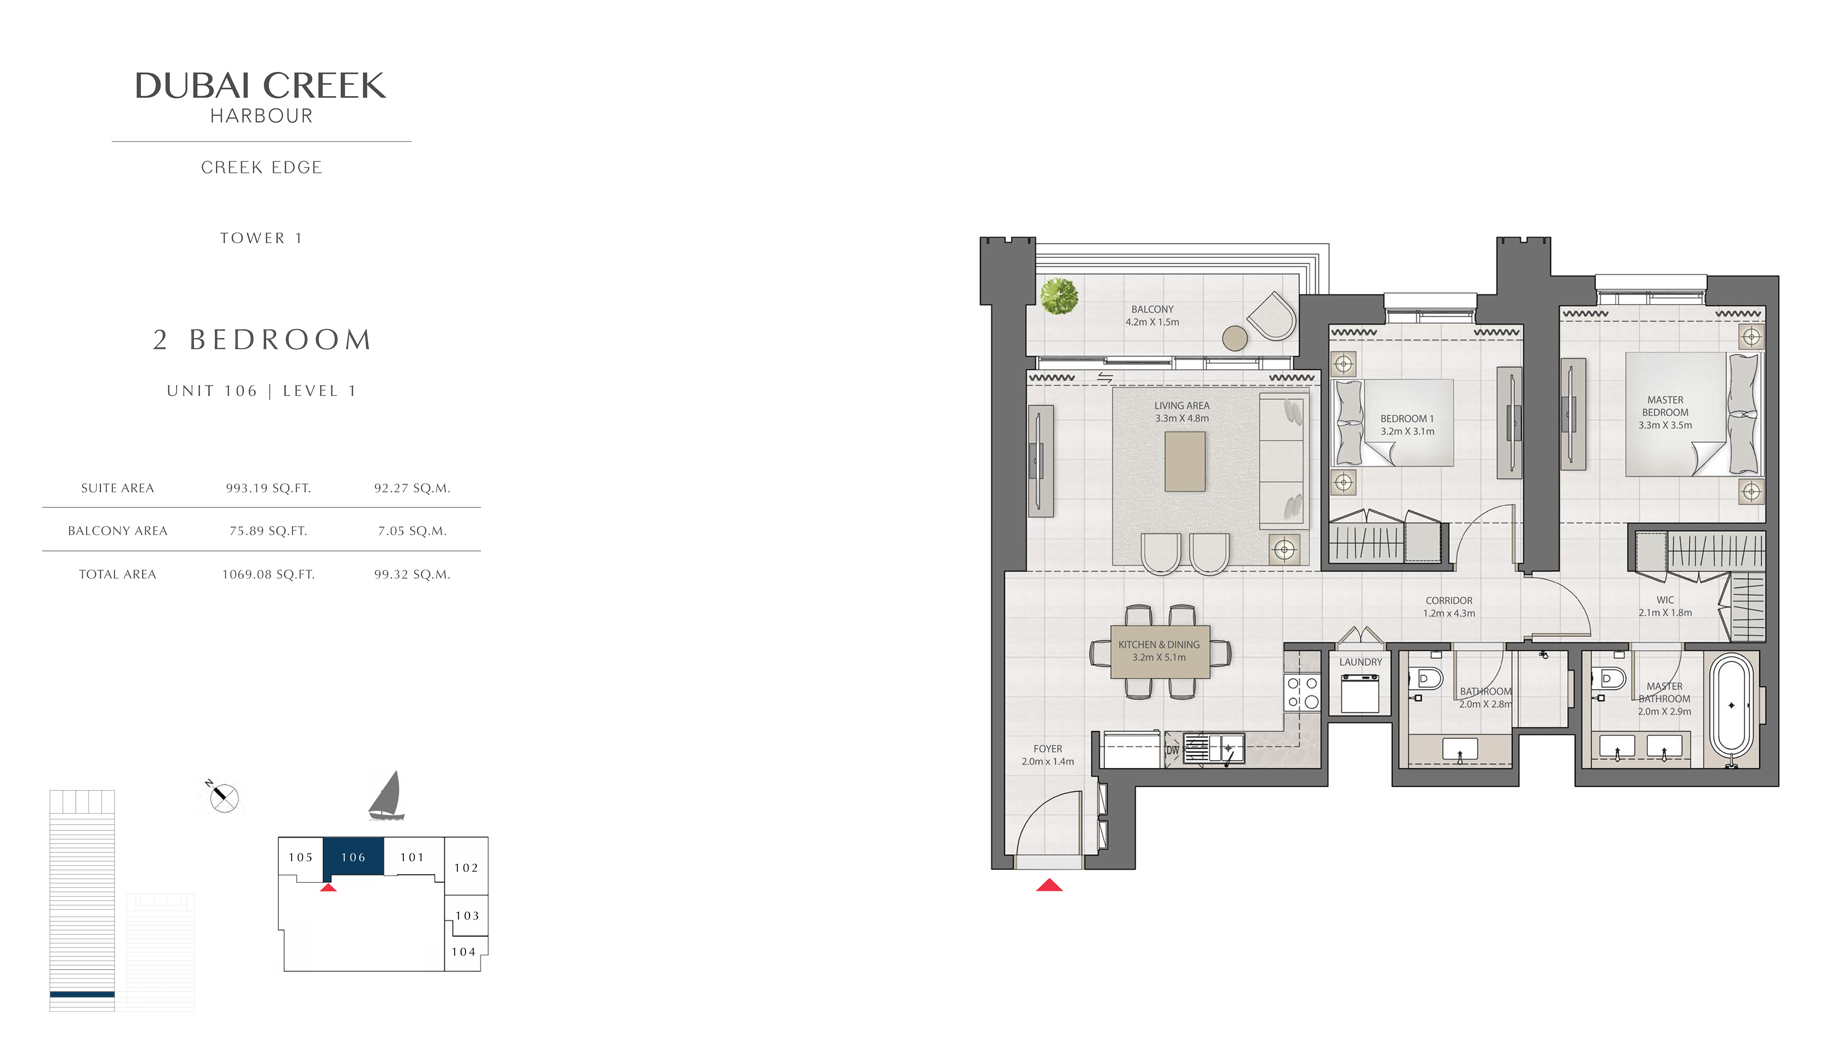 2 Bedroom Tower 1 Unit 106 Level 1 Size 1069 sq.ft